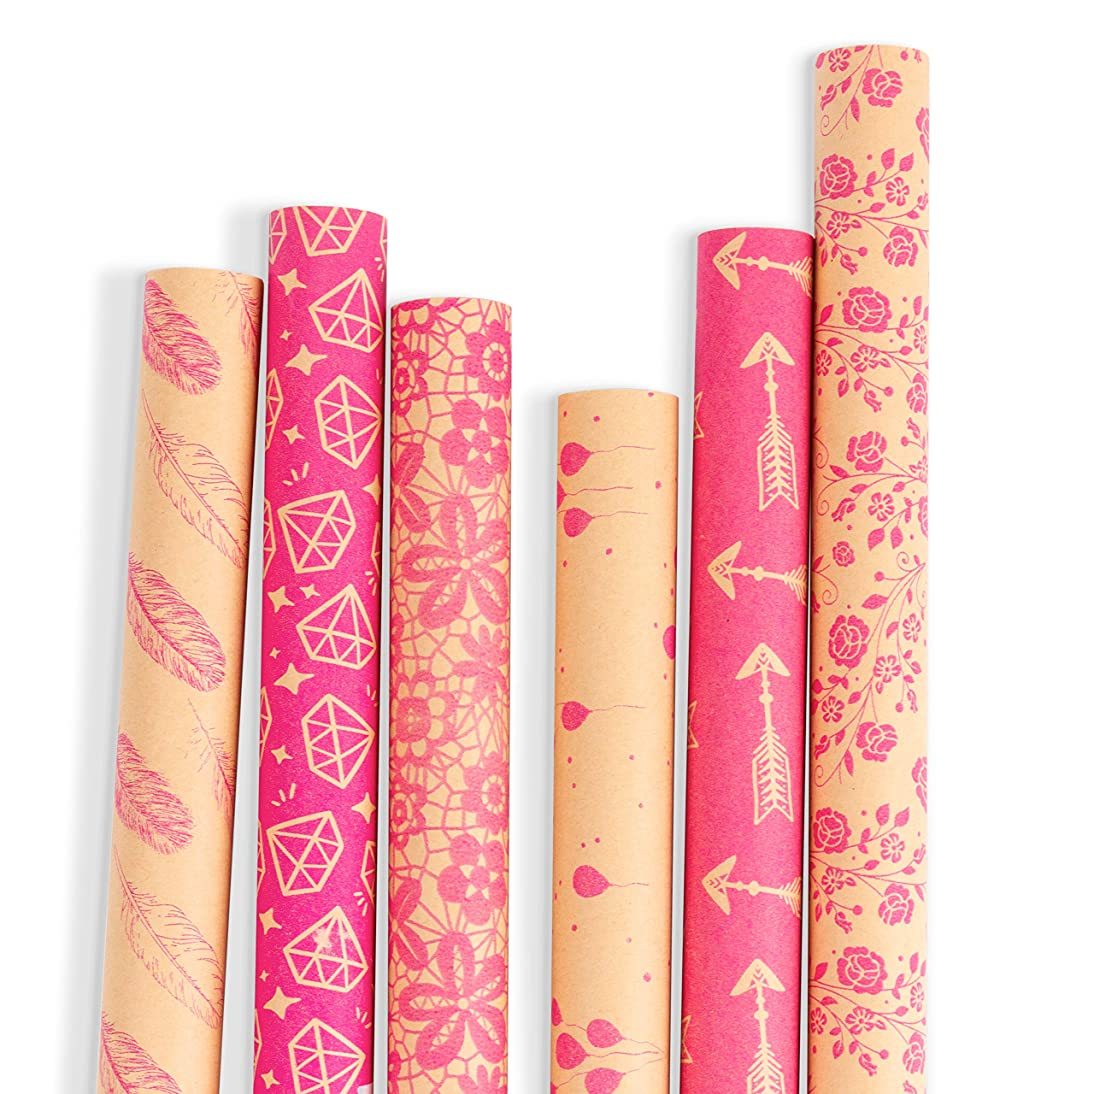 RUSPEPA Kraft Gift Wrapping Paper - Brown Kraft Paper with Hot Pink Pattern Collection-6 Roll-30Inch X 10Feet Per Roll